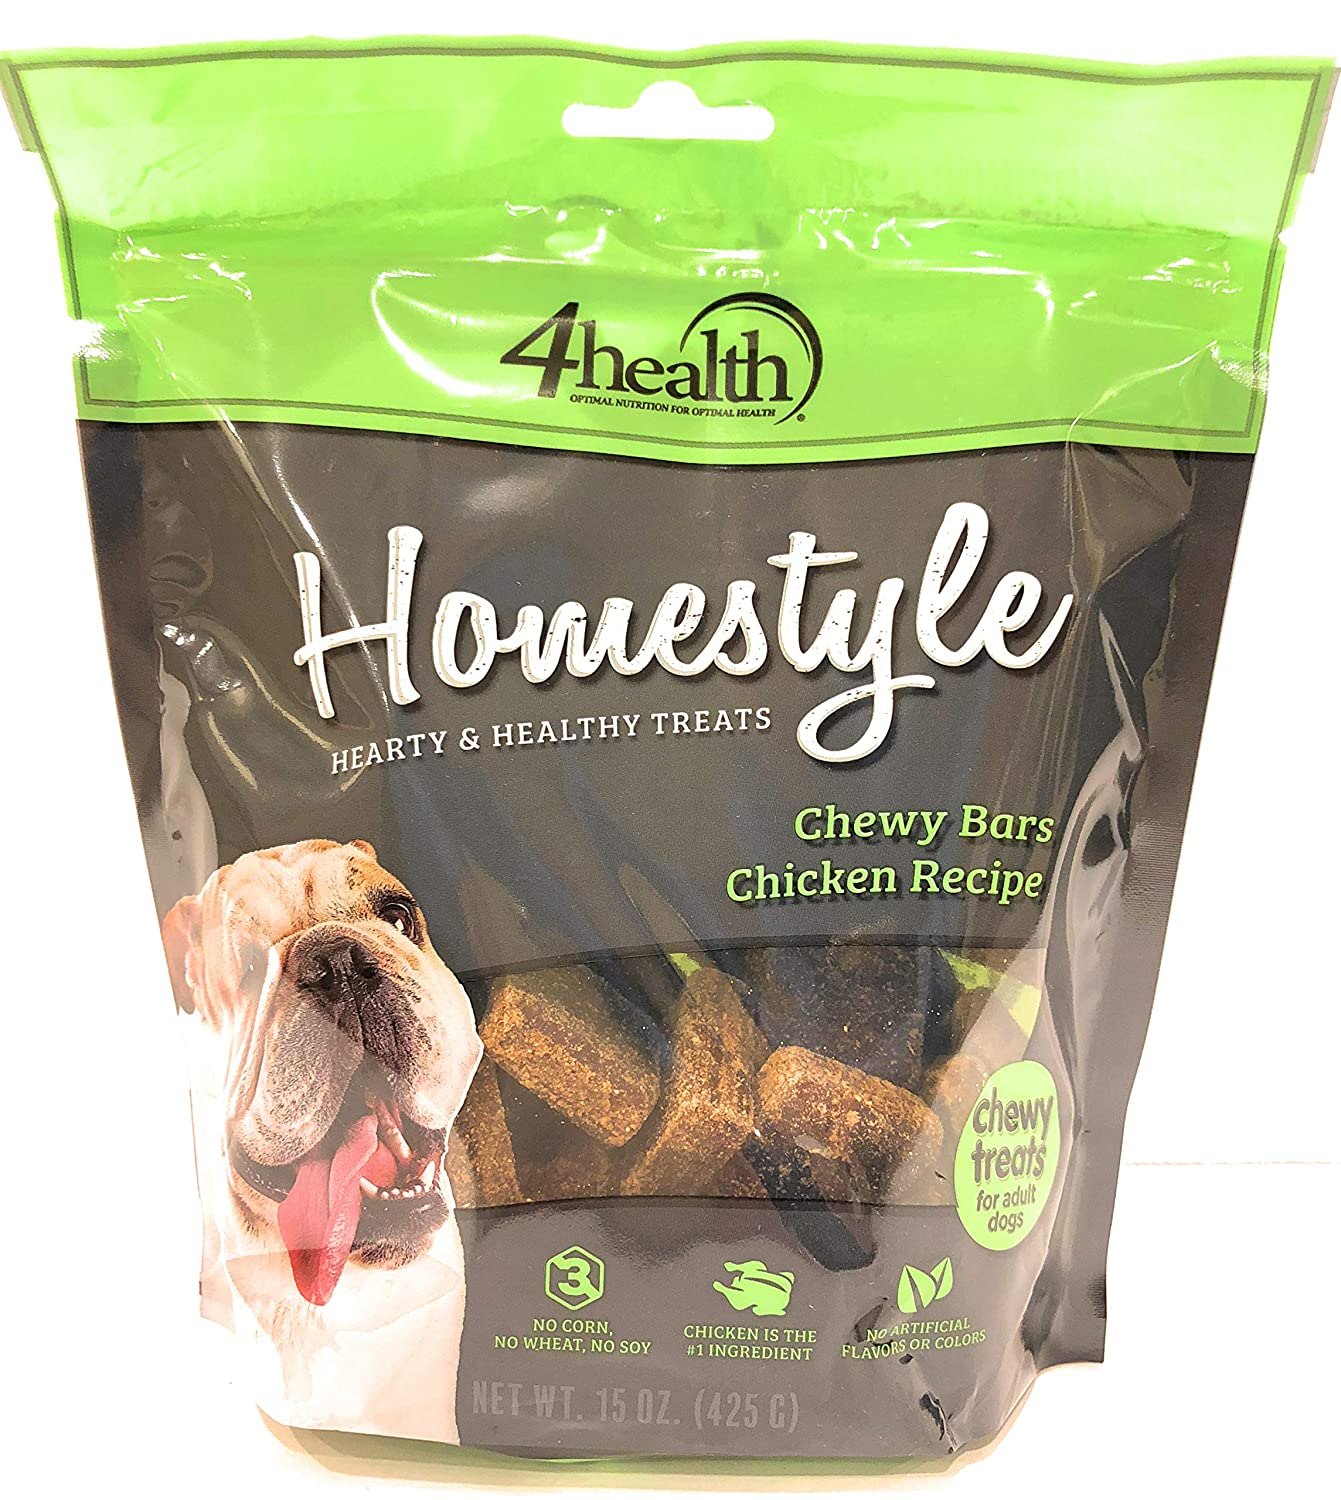 4health Homestyle, Chewy Bars Chicken Recipe, Chewy Treats for Adult Dogs, Wheat Free, 15oz